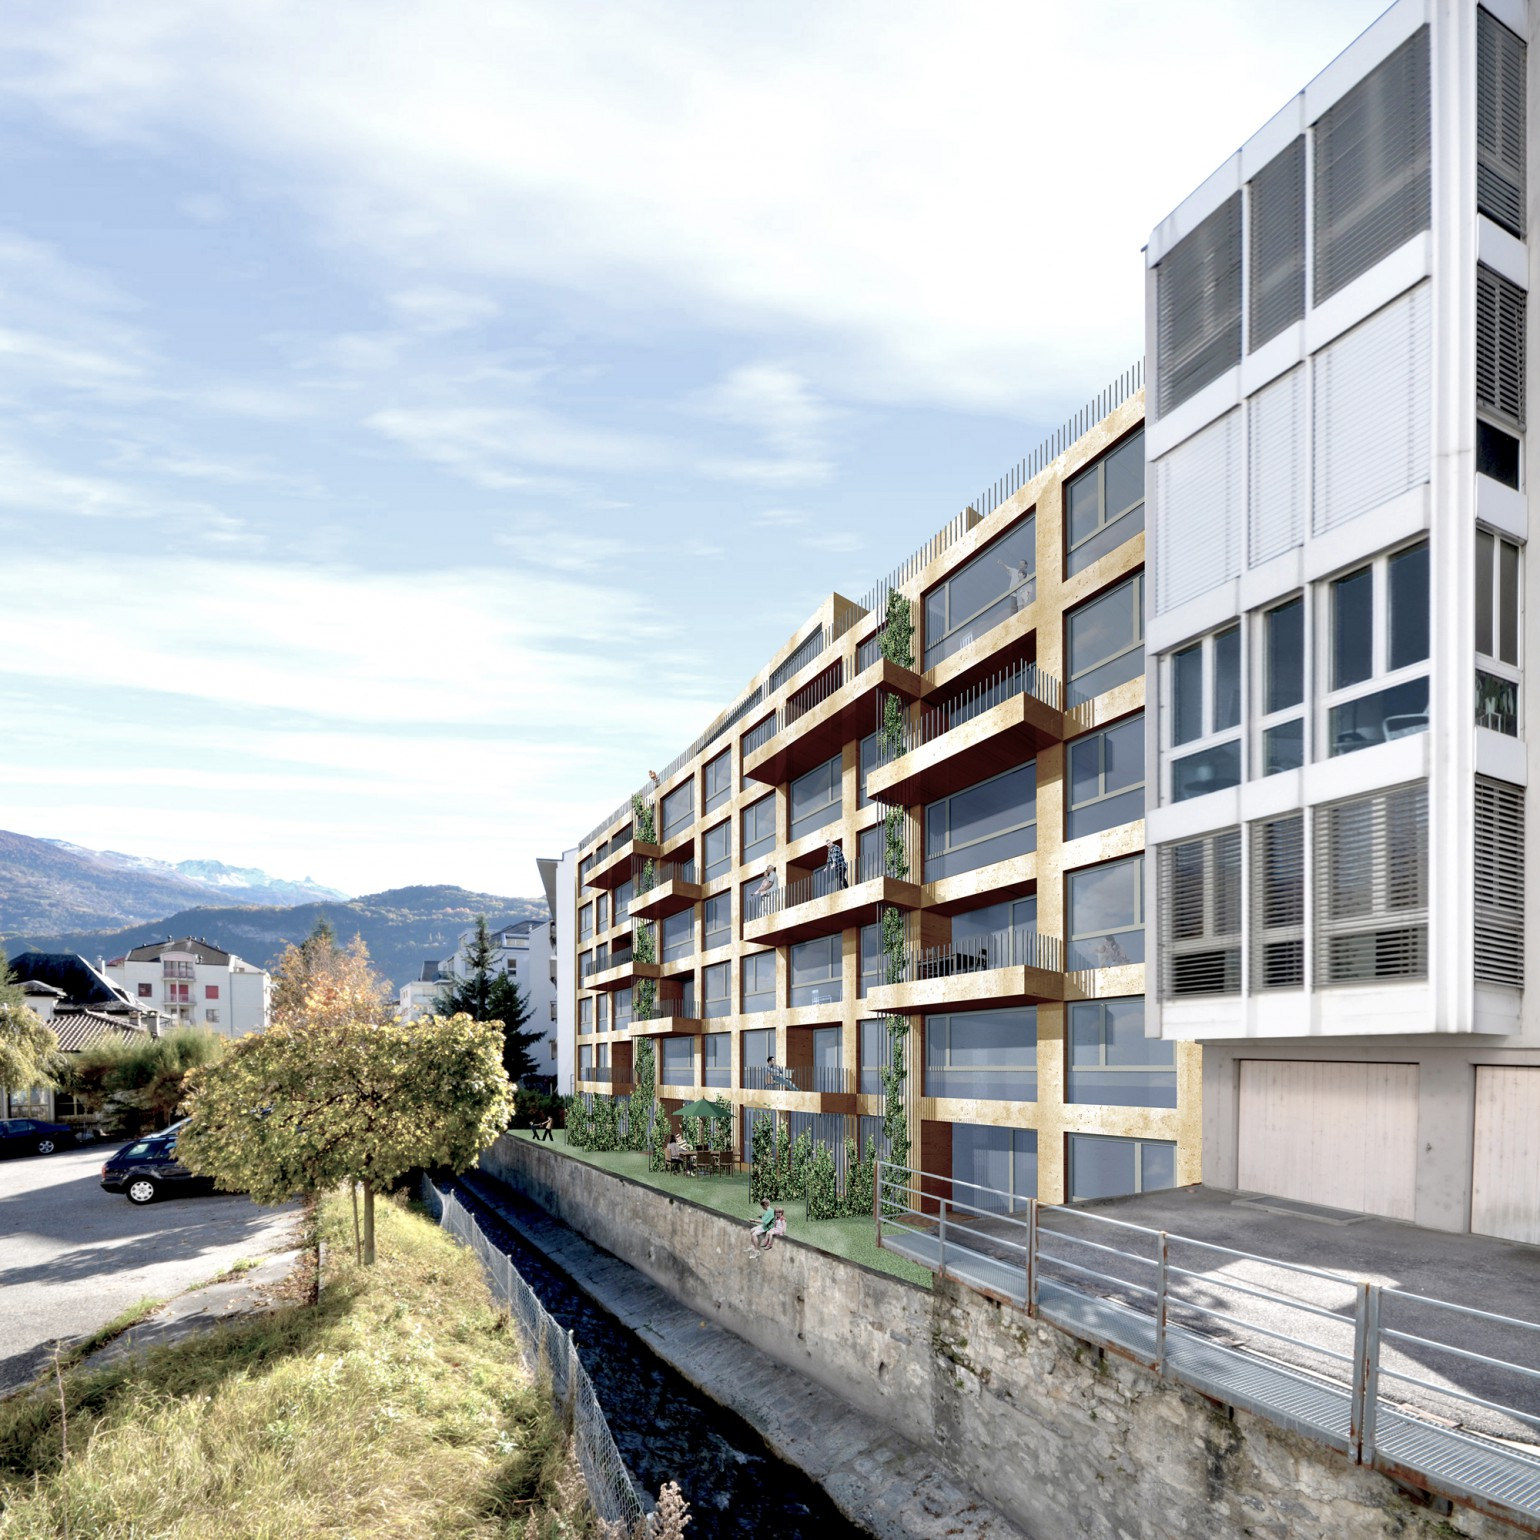 immeuble-dixence-sion-meyer-architecture-sion-02